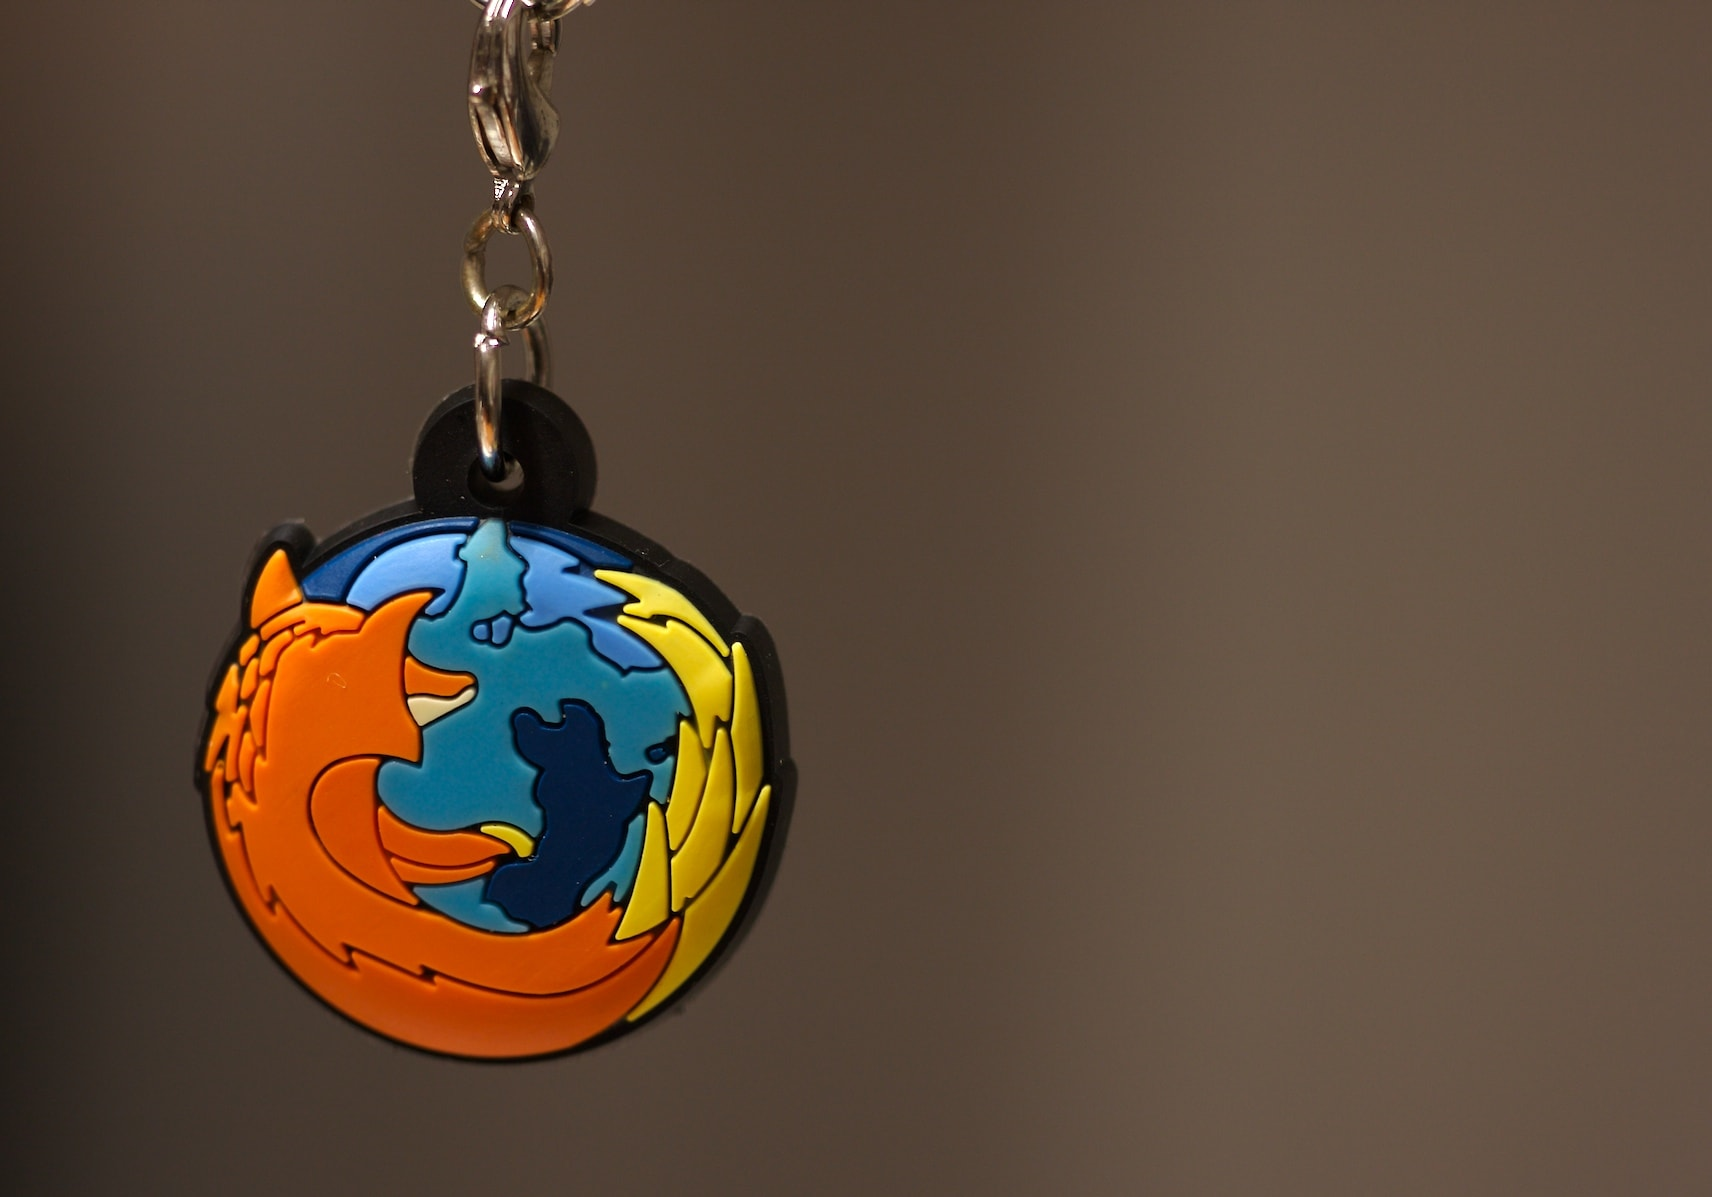 A keychain with the Firefox logo